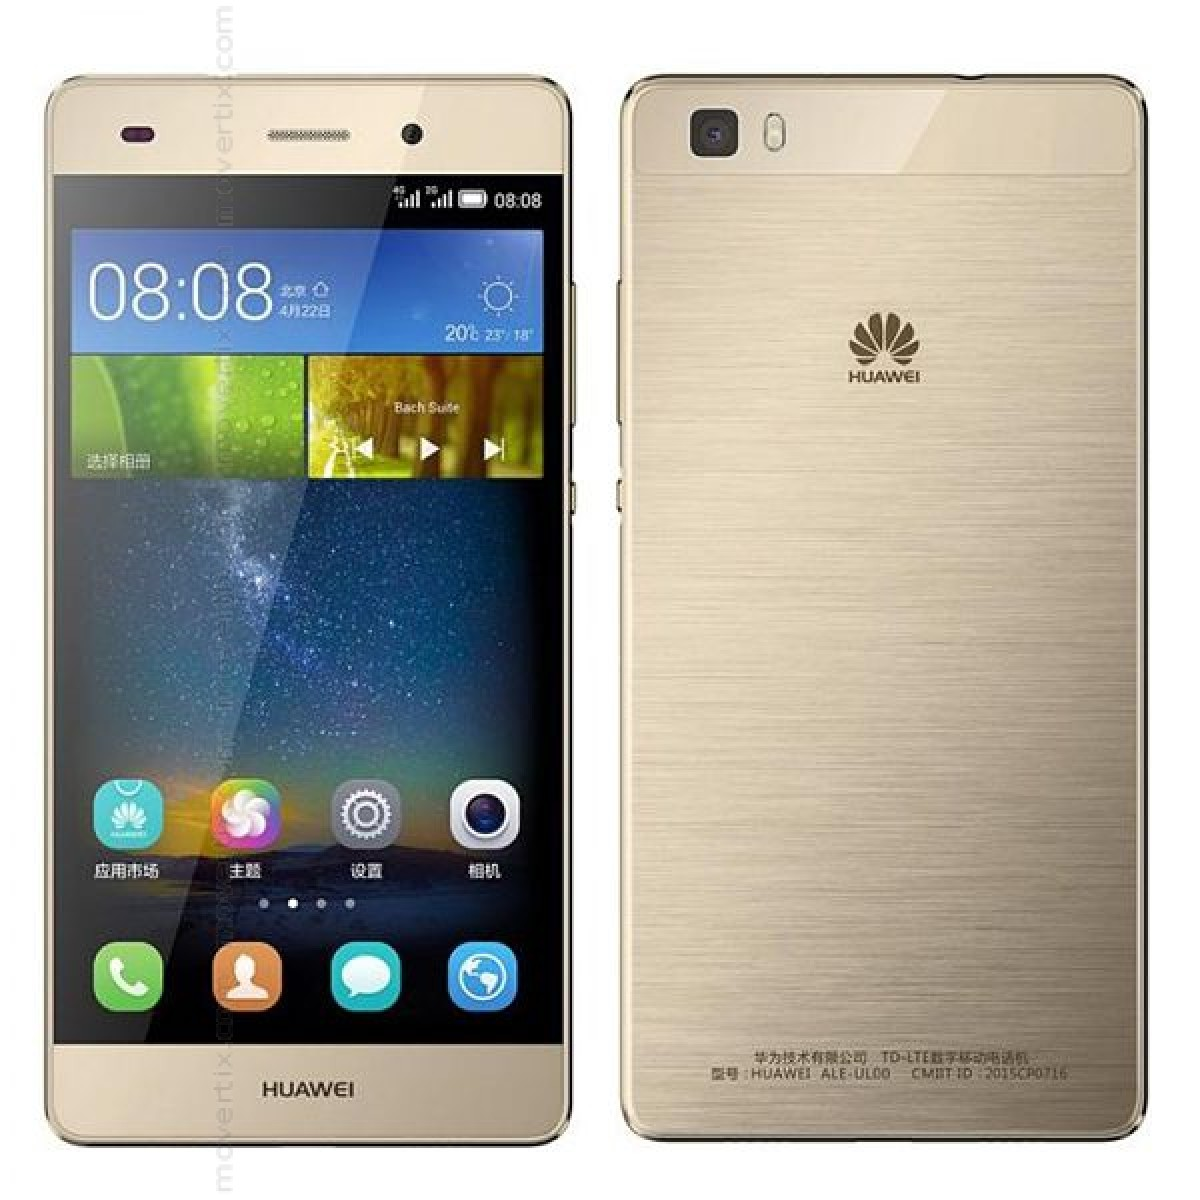 huawei p8 lite dual sim gold eu. Black Bedroom Furniture Sets. Home Design Ideas